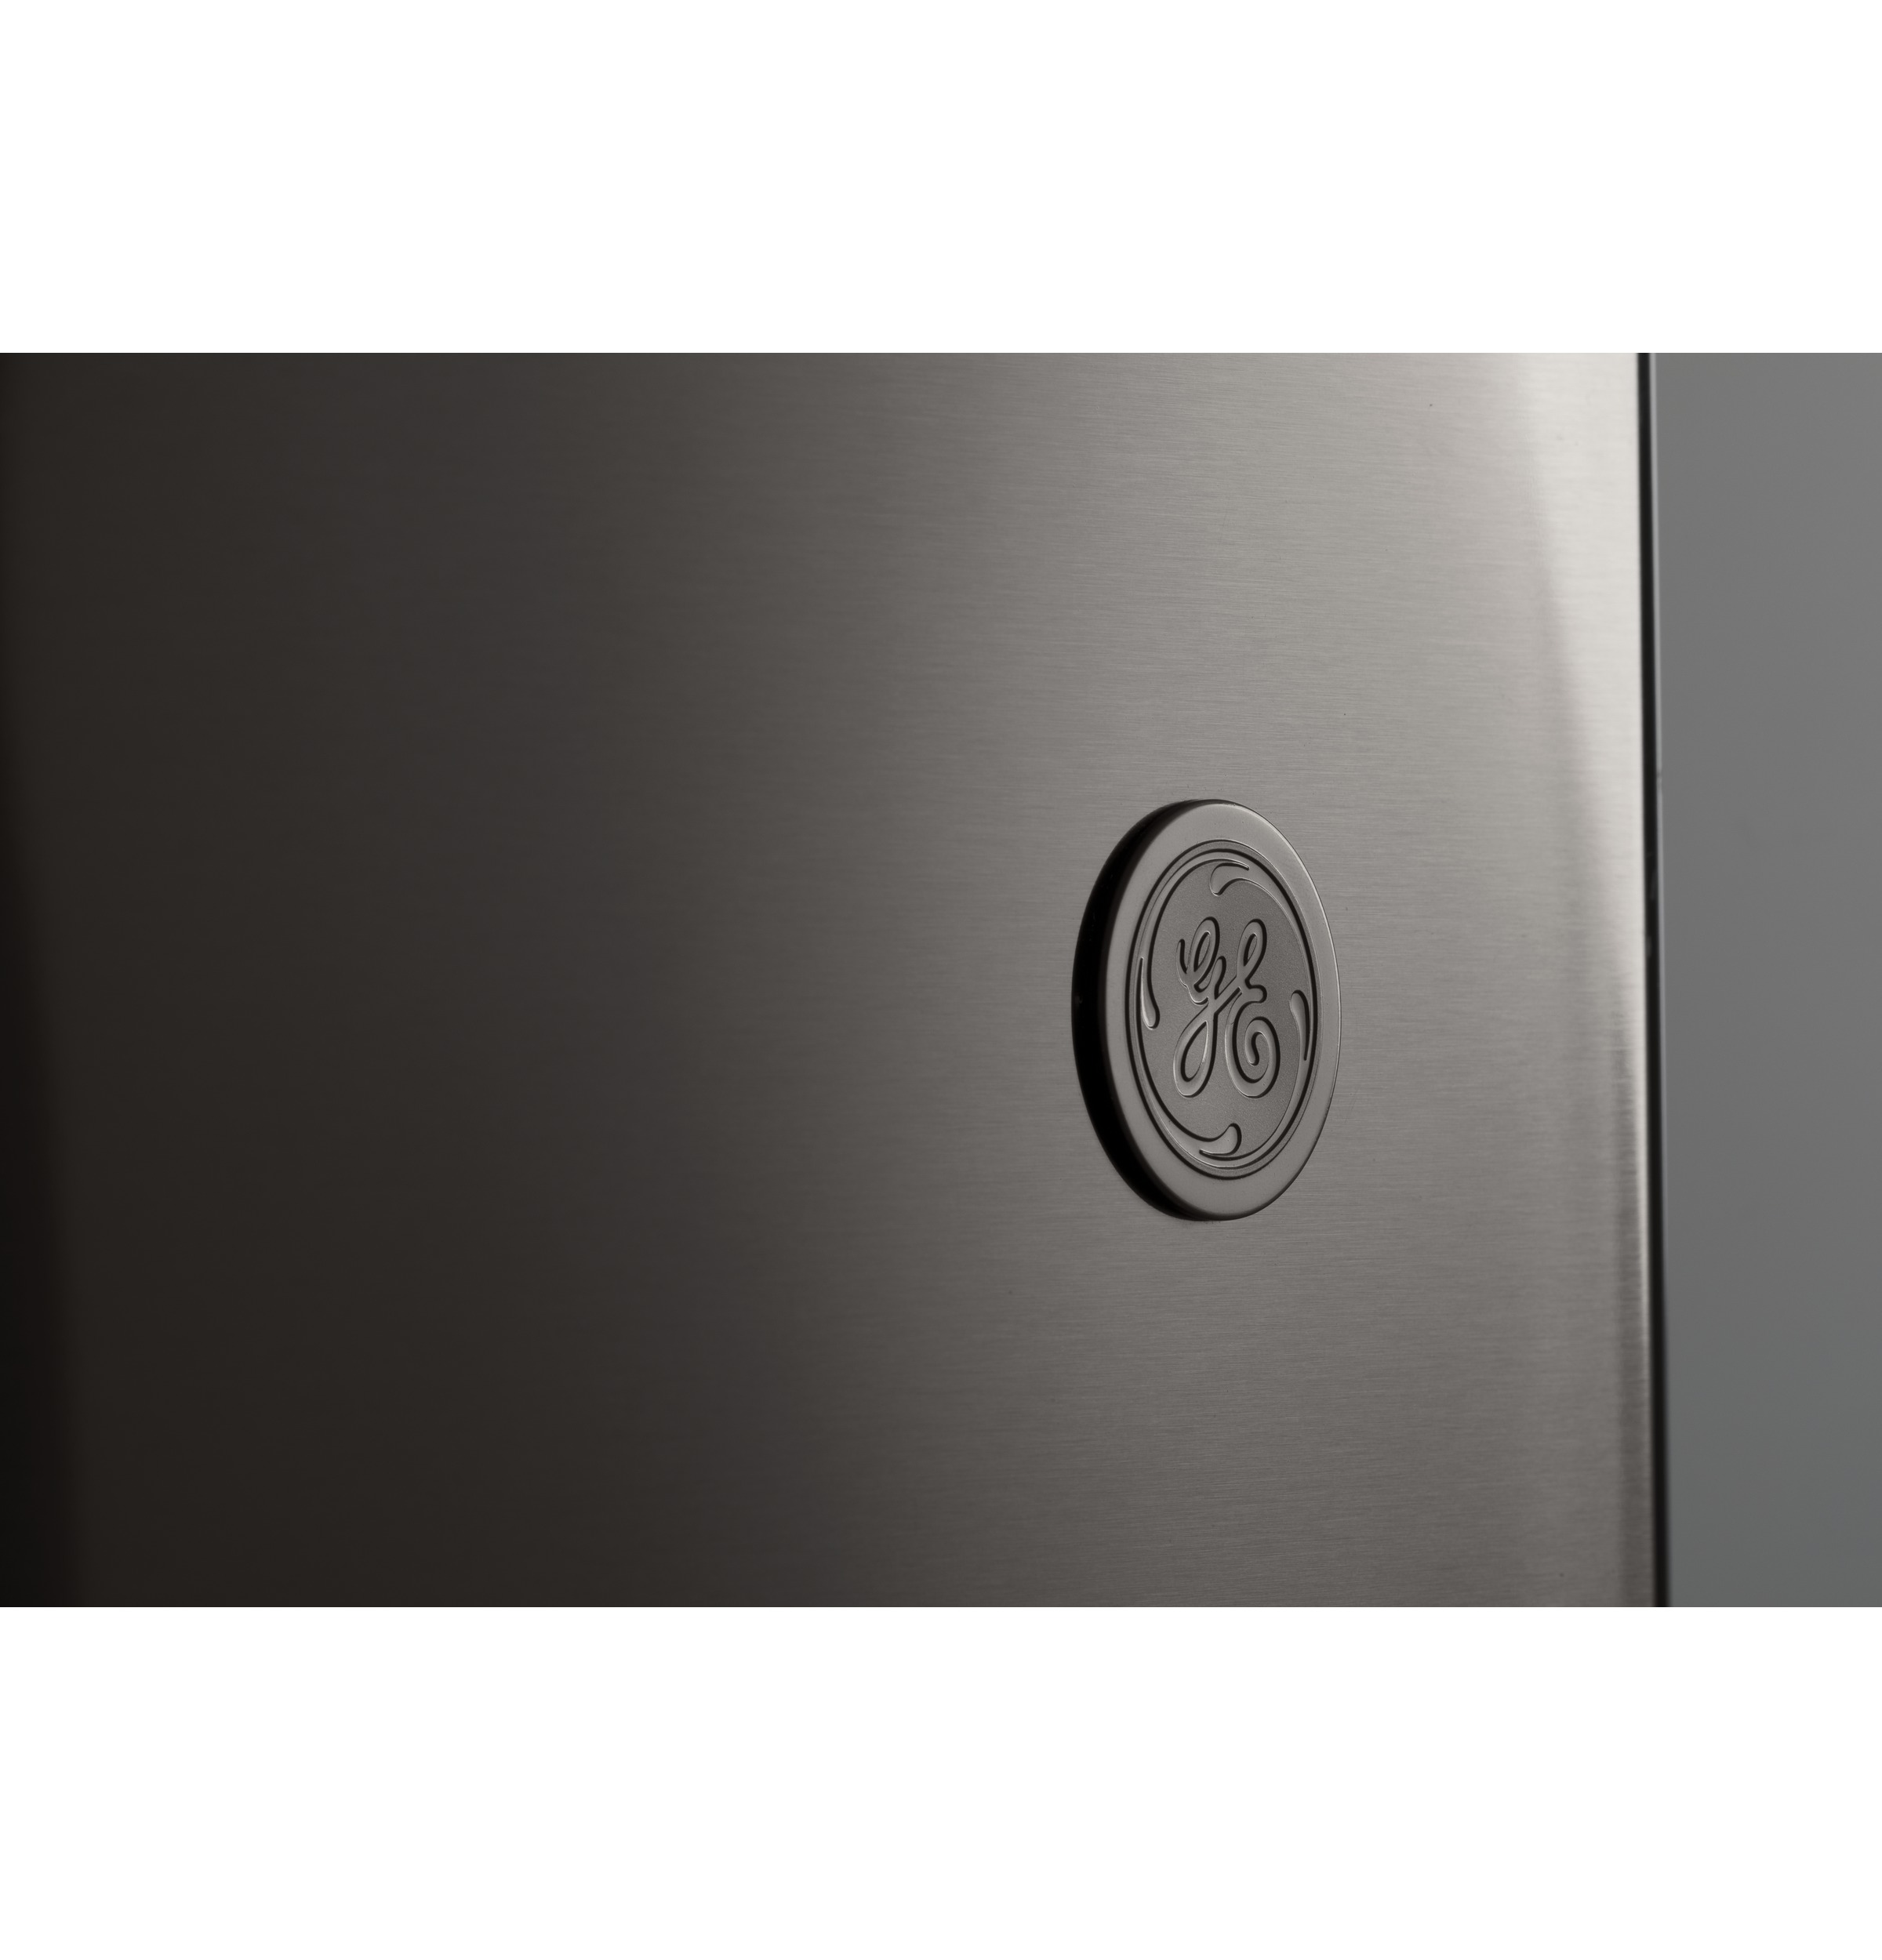 Model: PFD28KBLTS | GE Profile™ Series 27.8 Cu. Ft. French-Door Refrigerator with Door In Door and Hands-Free AutoFill